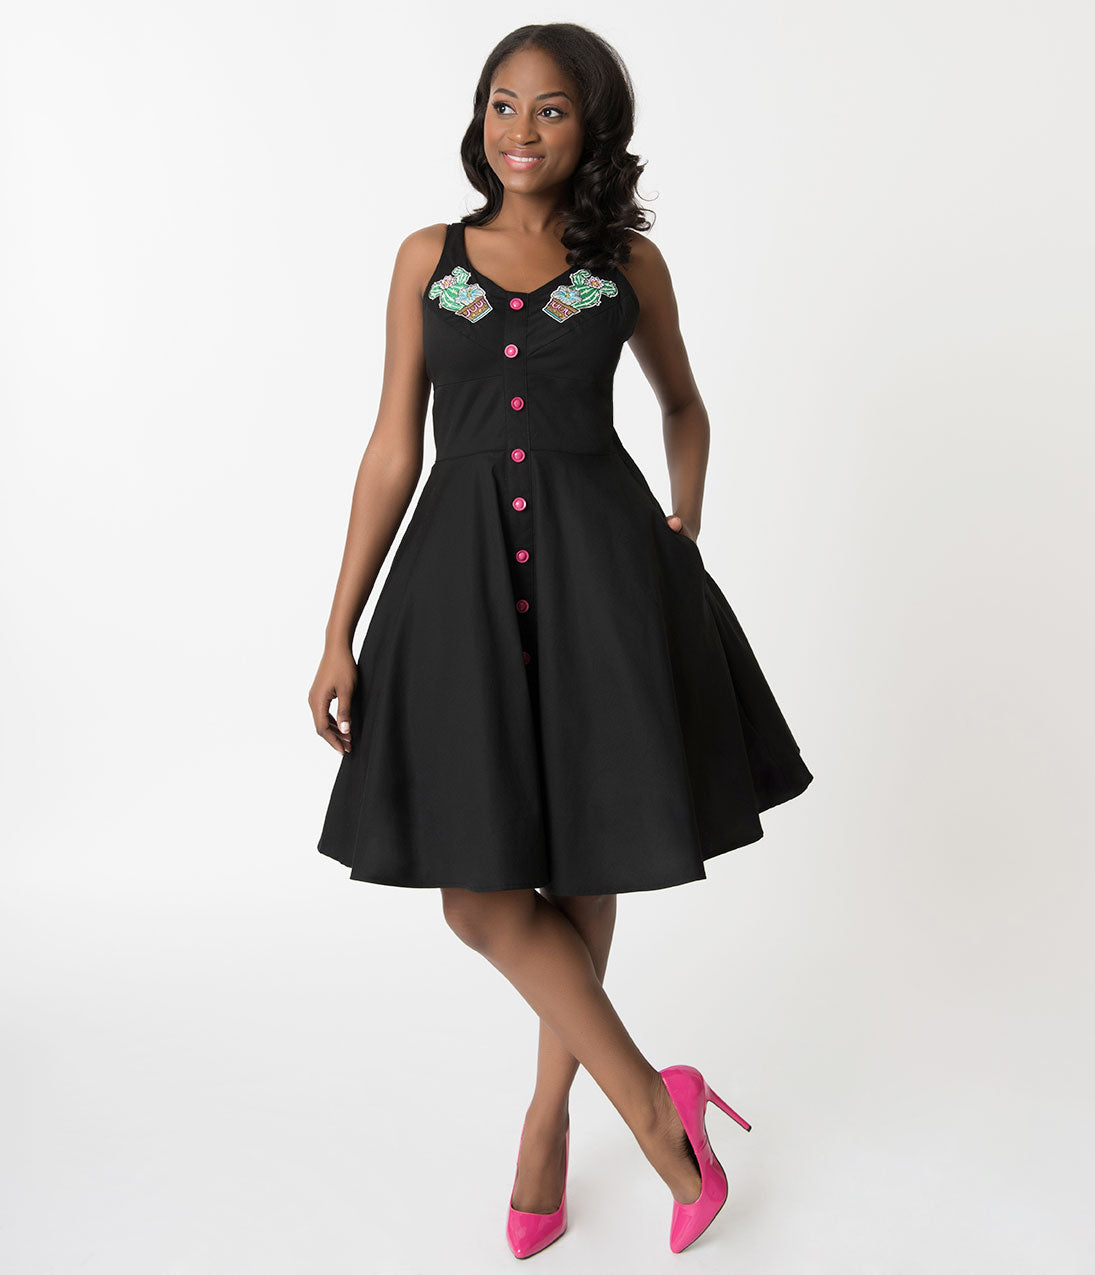 Pin Up Dresses | Pin Up Clothing Hell Bunny Black  Hatiora Cactus Embroidered Cotton Swing Dress $82.00 AT vintagedancer.com